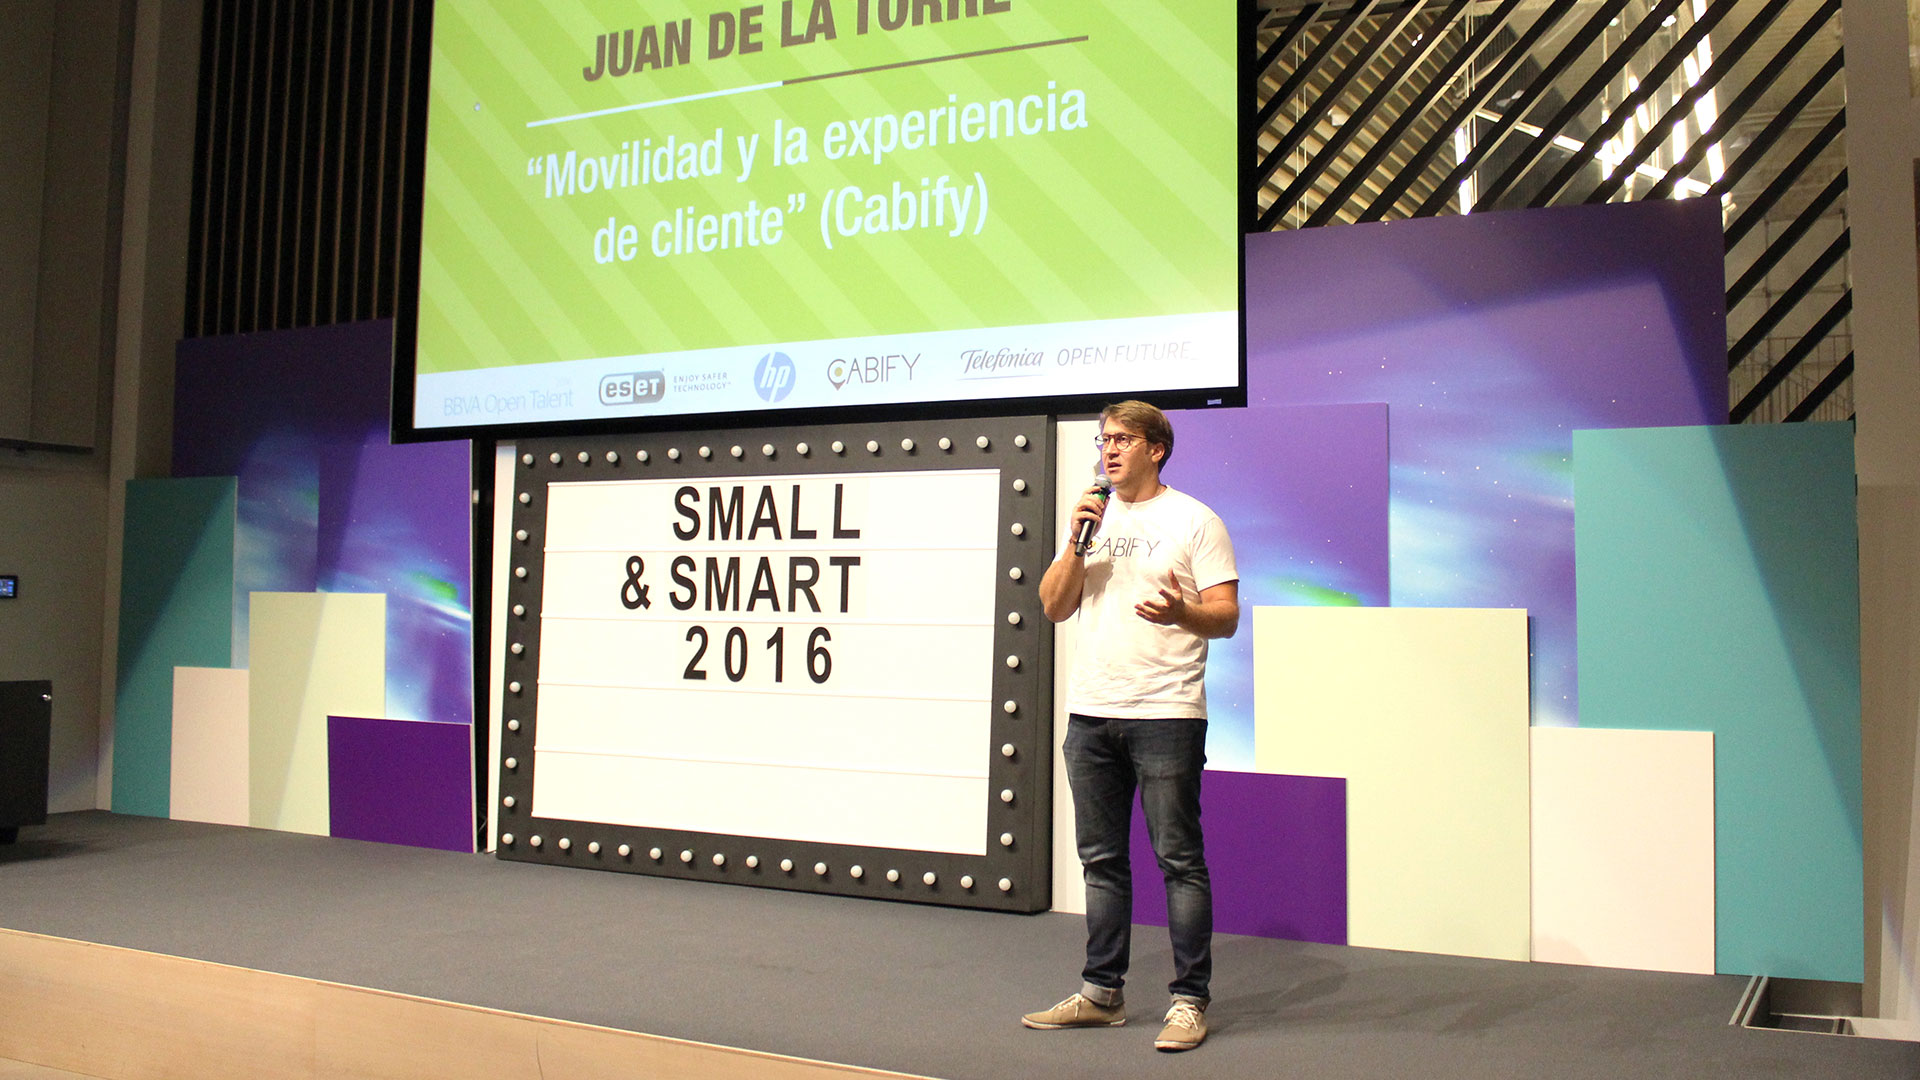 tpnet-small-smart-2016-evento-startups-smarttalks-juan-delatorre-cabify